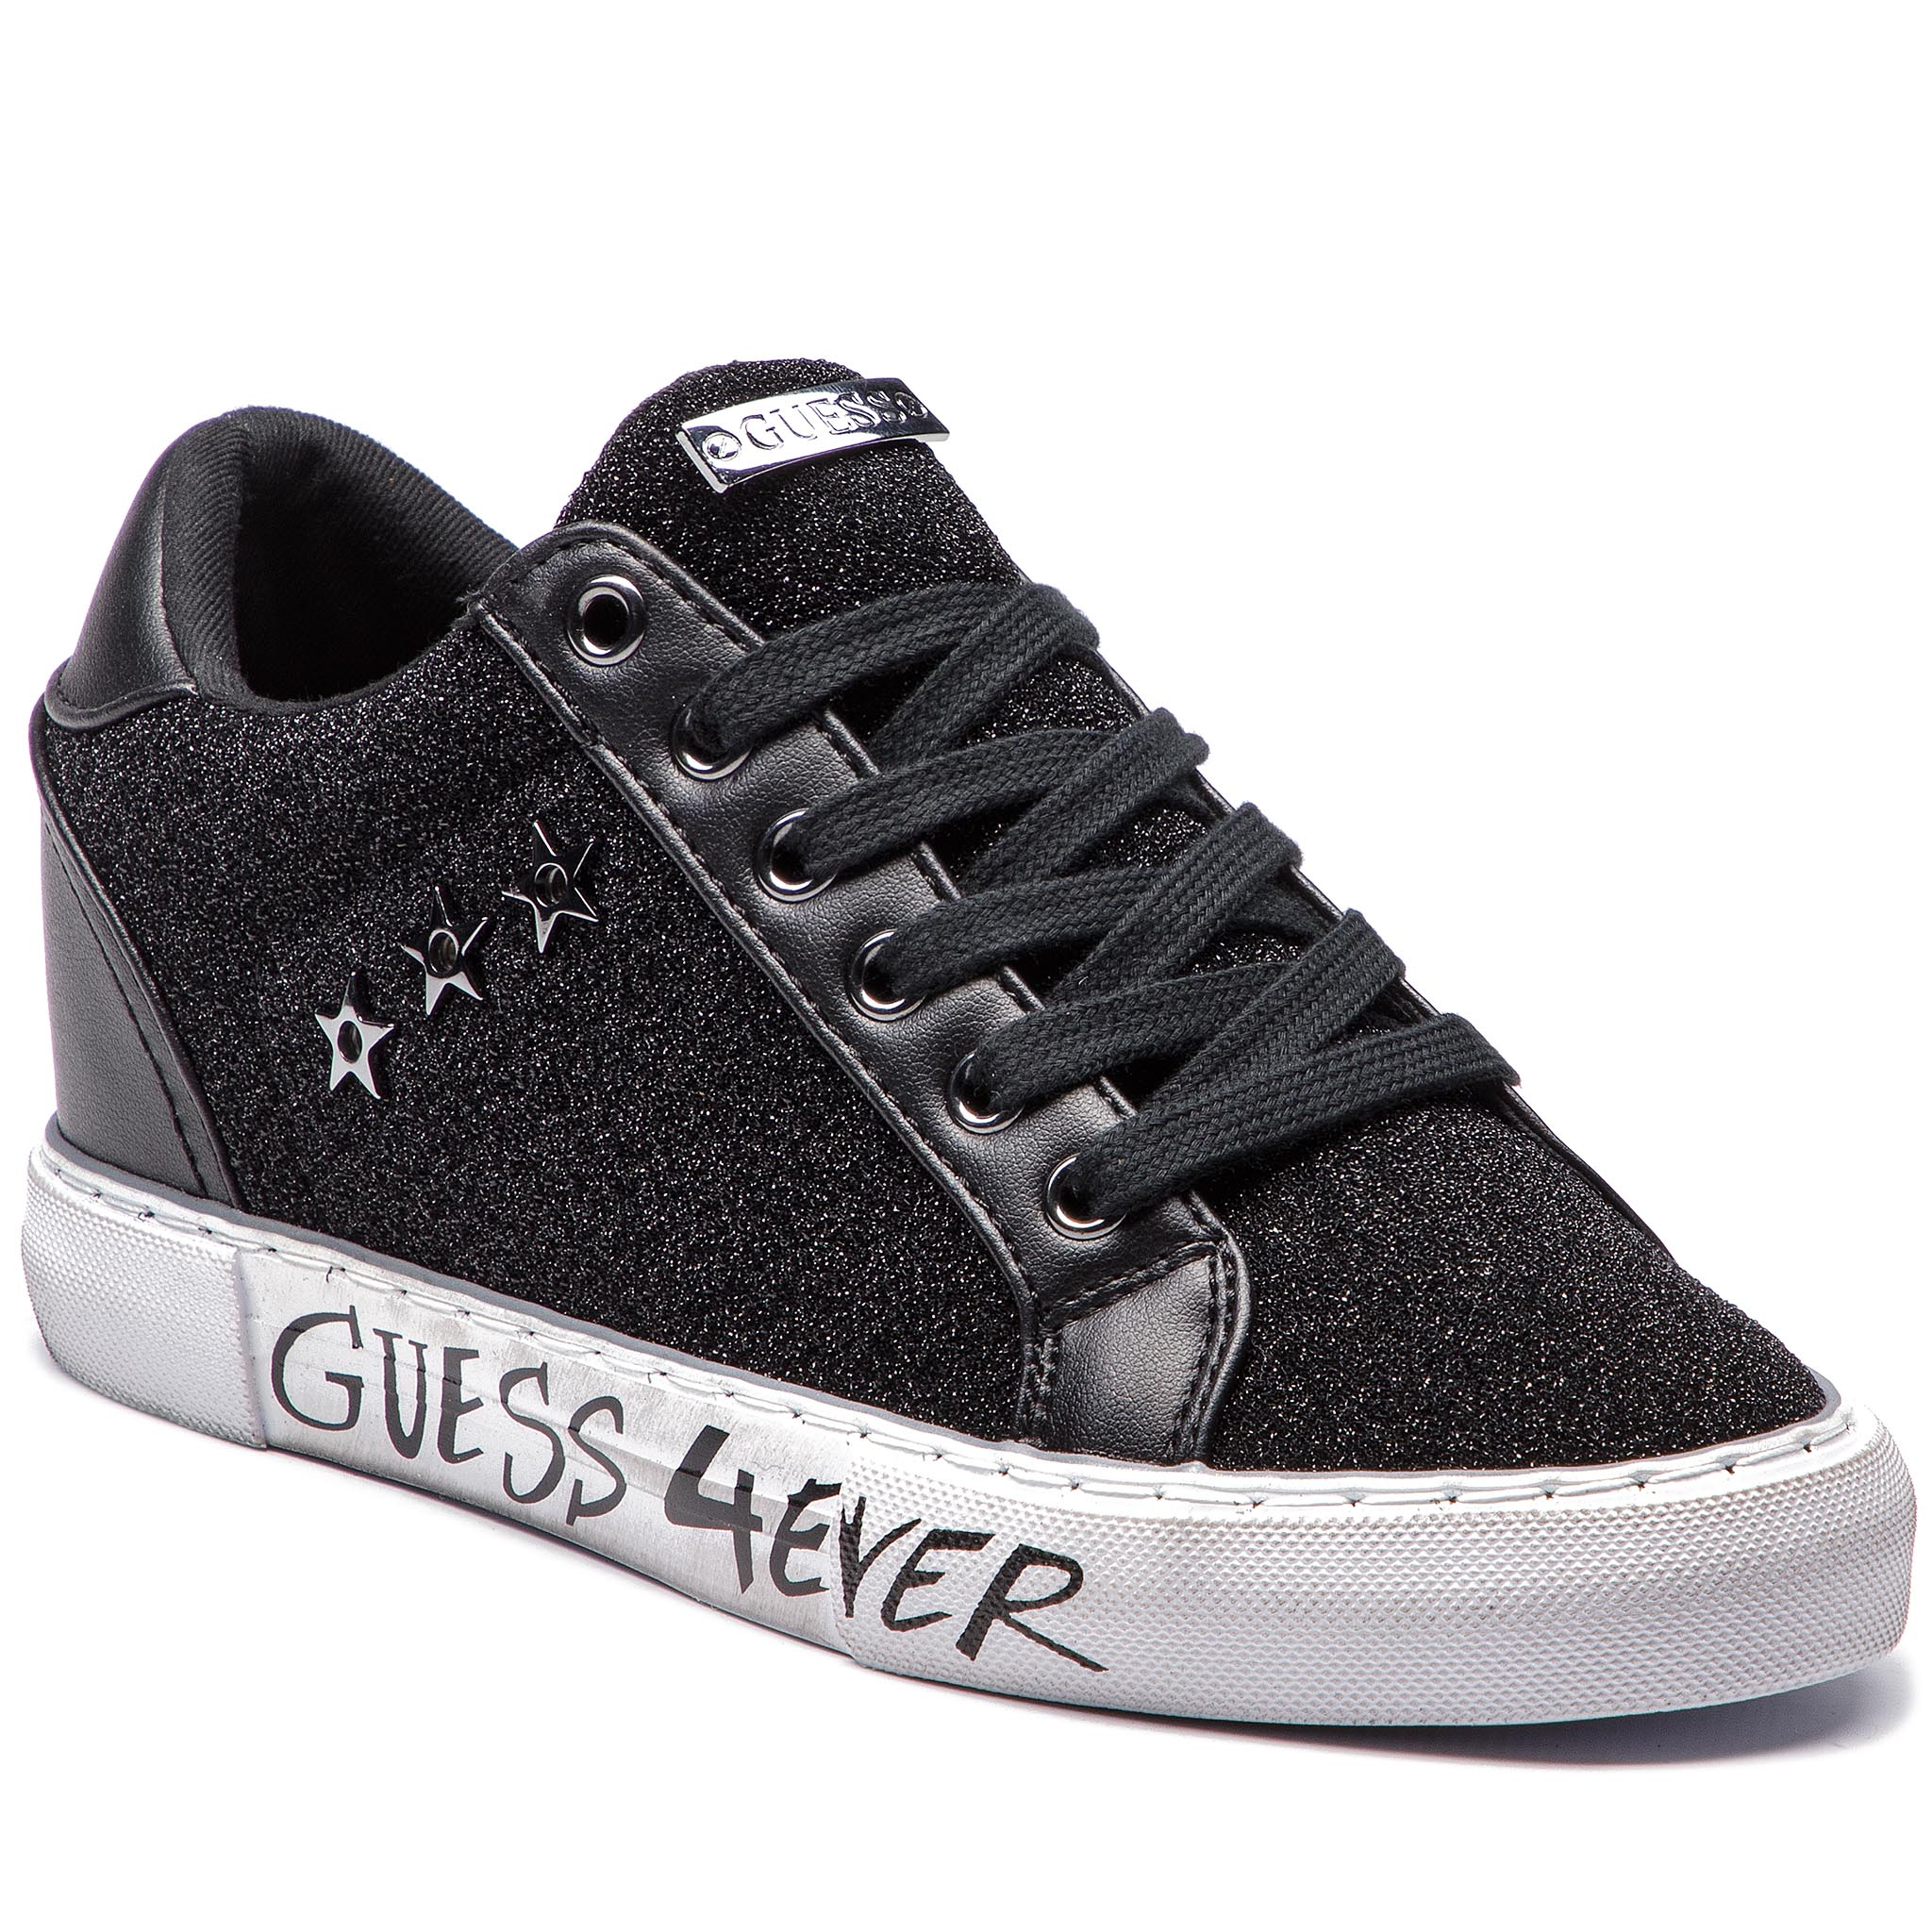 Sneakers GUESS - FLPRE4 FAM12 BLACK